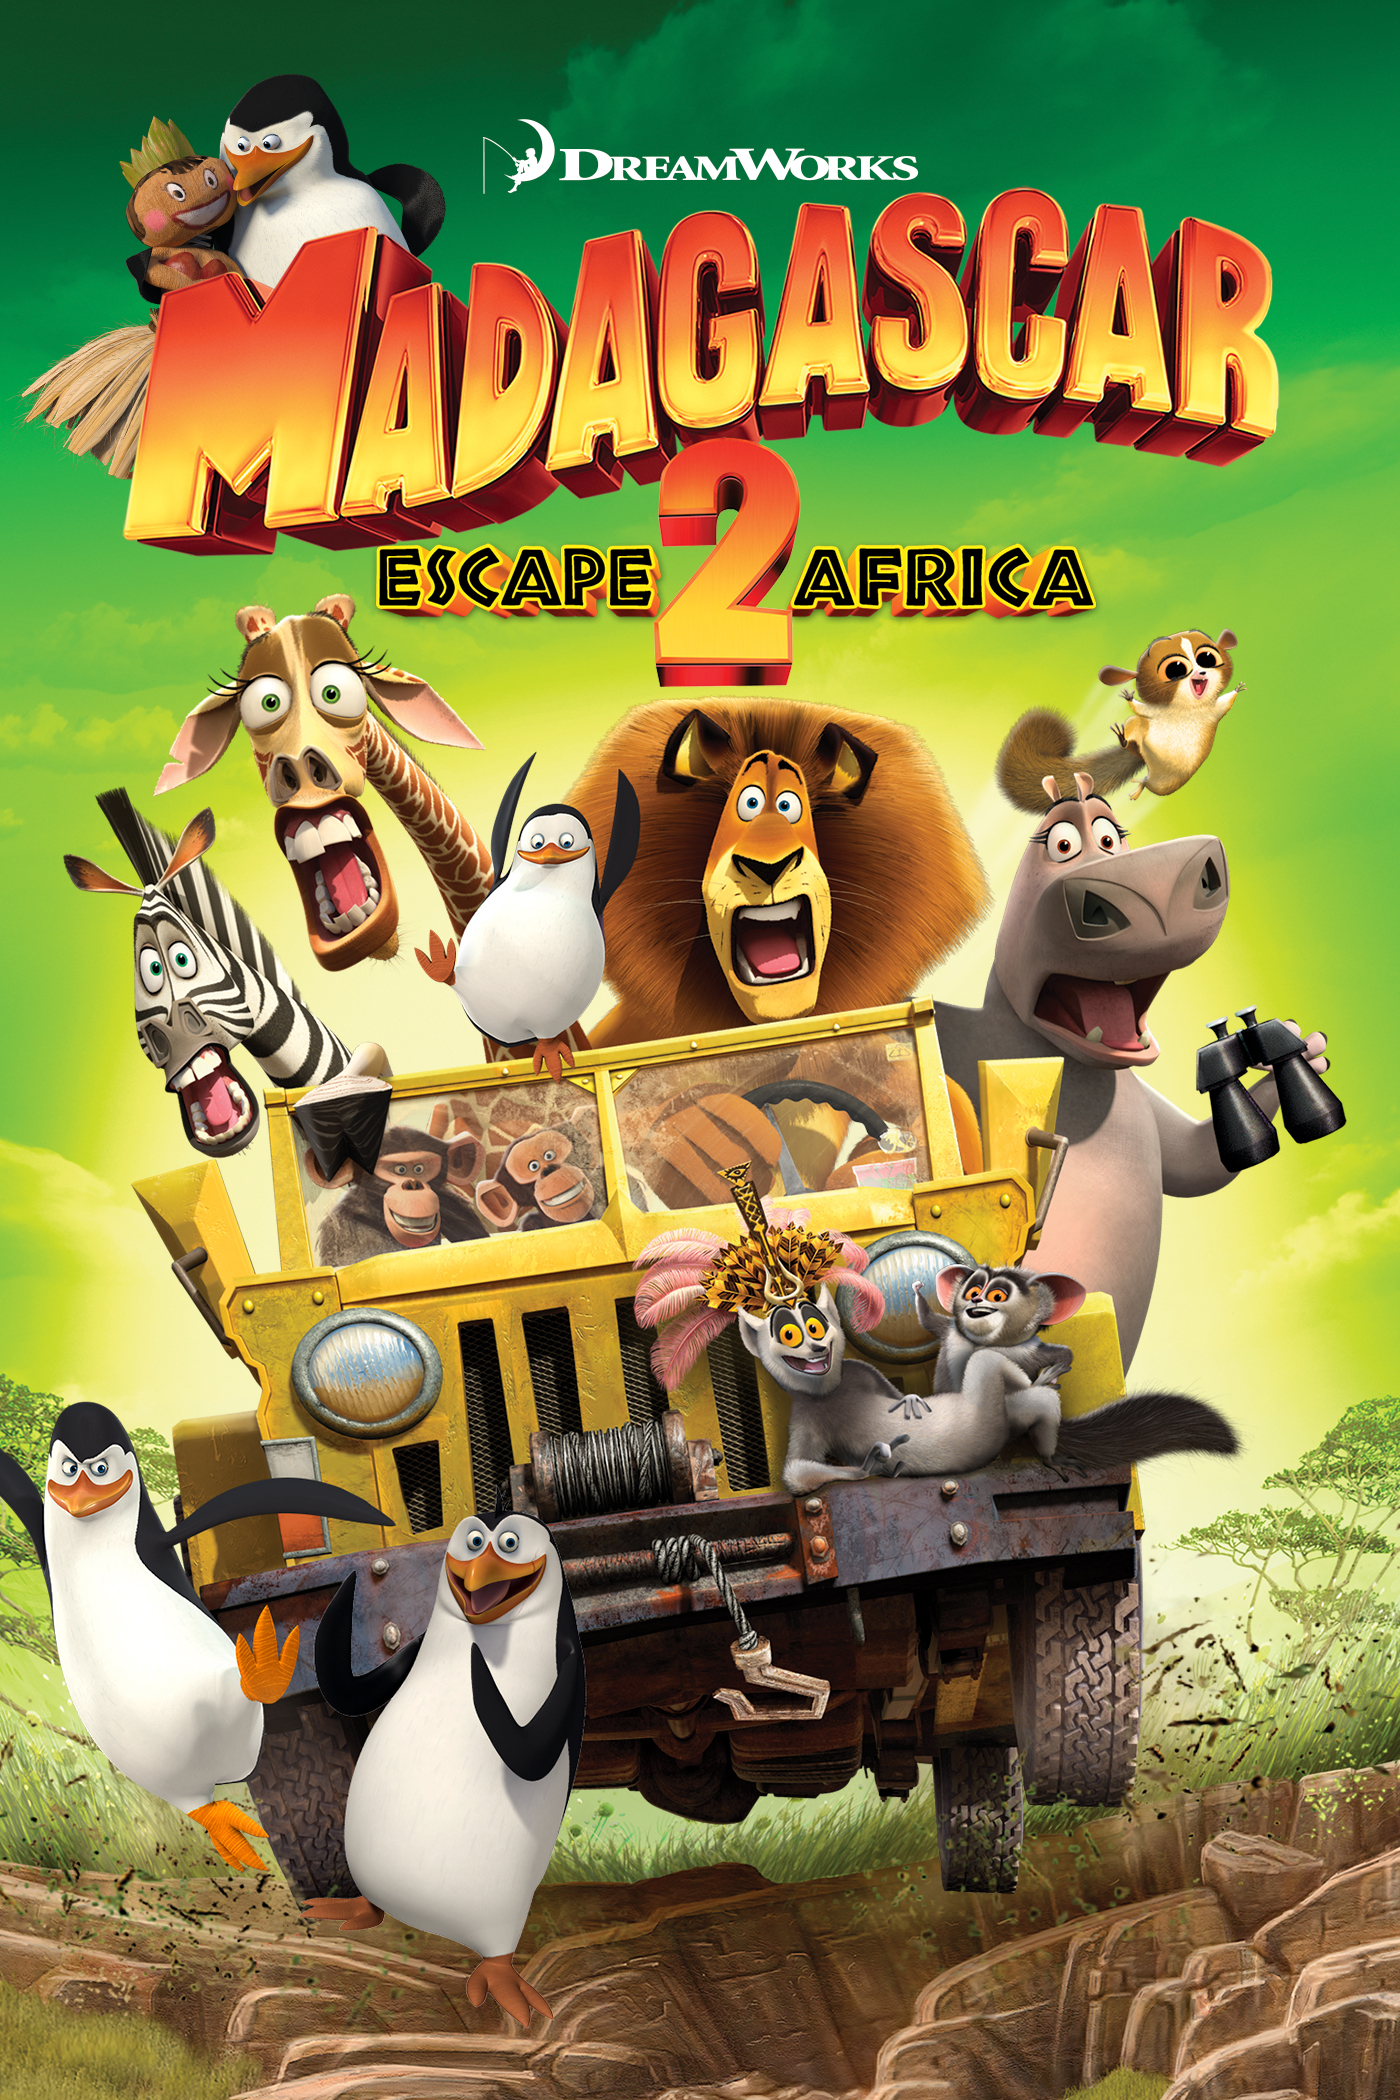 madagascar escape 2 africa home video dreamworks